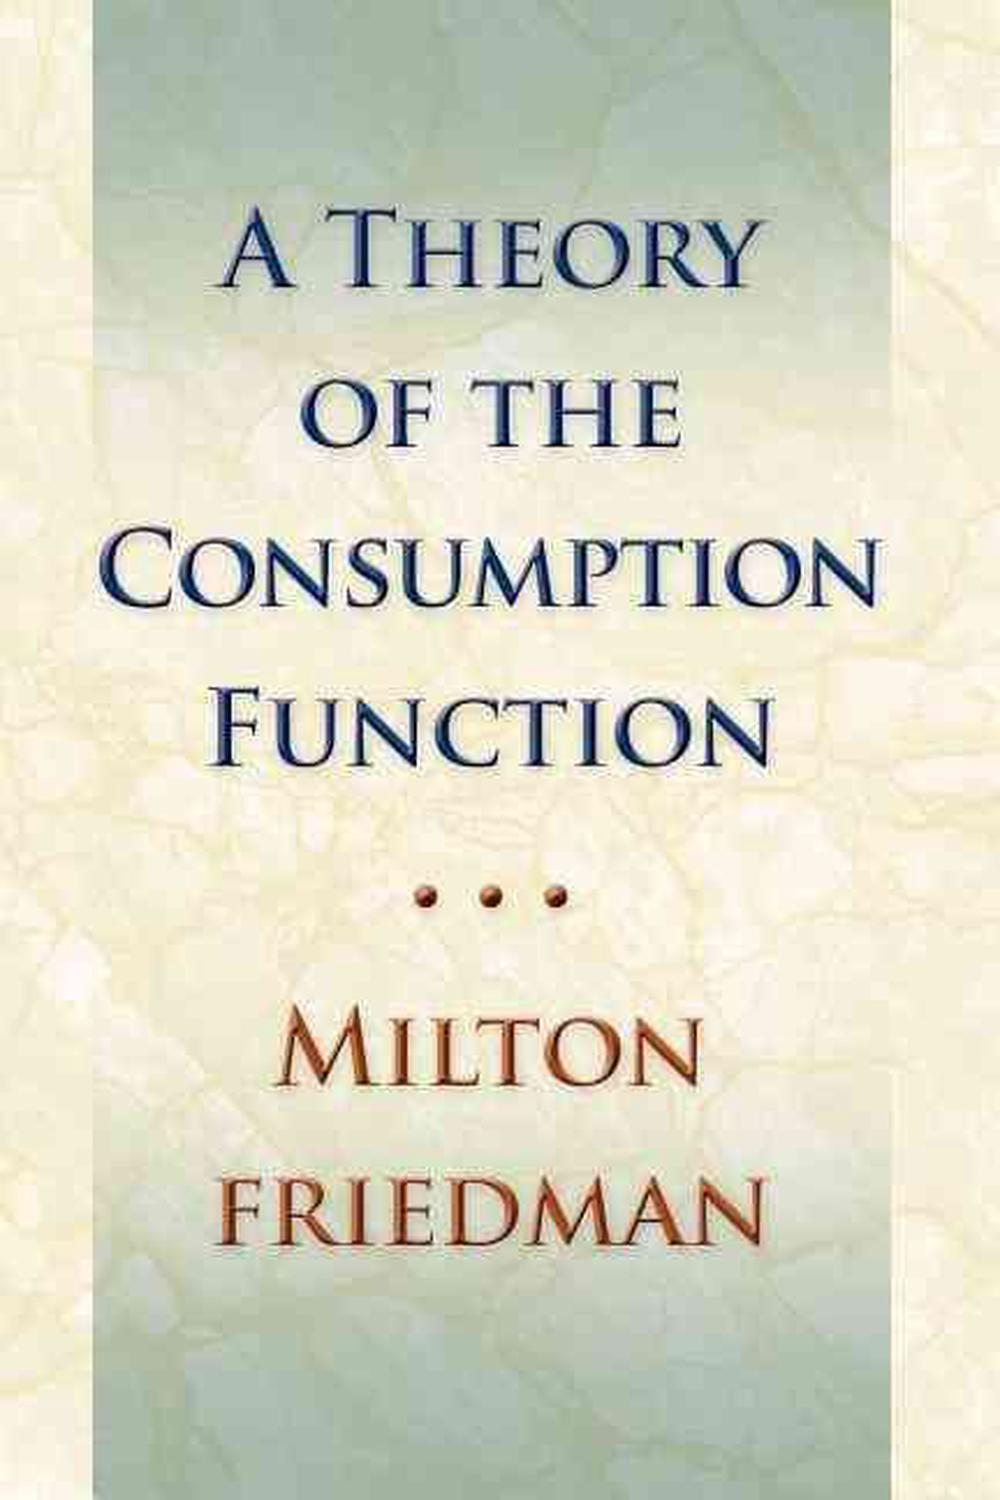 economic theories of milton friedman Milton friedman (1912-2006), a nobel prize winning economist, specialized in consumption theory, monetary policy, and stabilization policy early in his career he was a keynesian, but he never advocated wage and price controls.